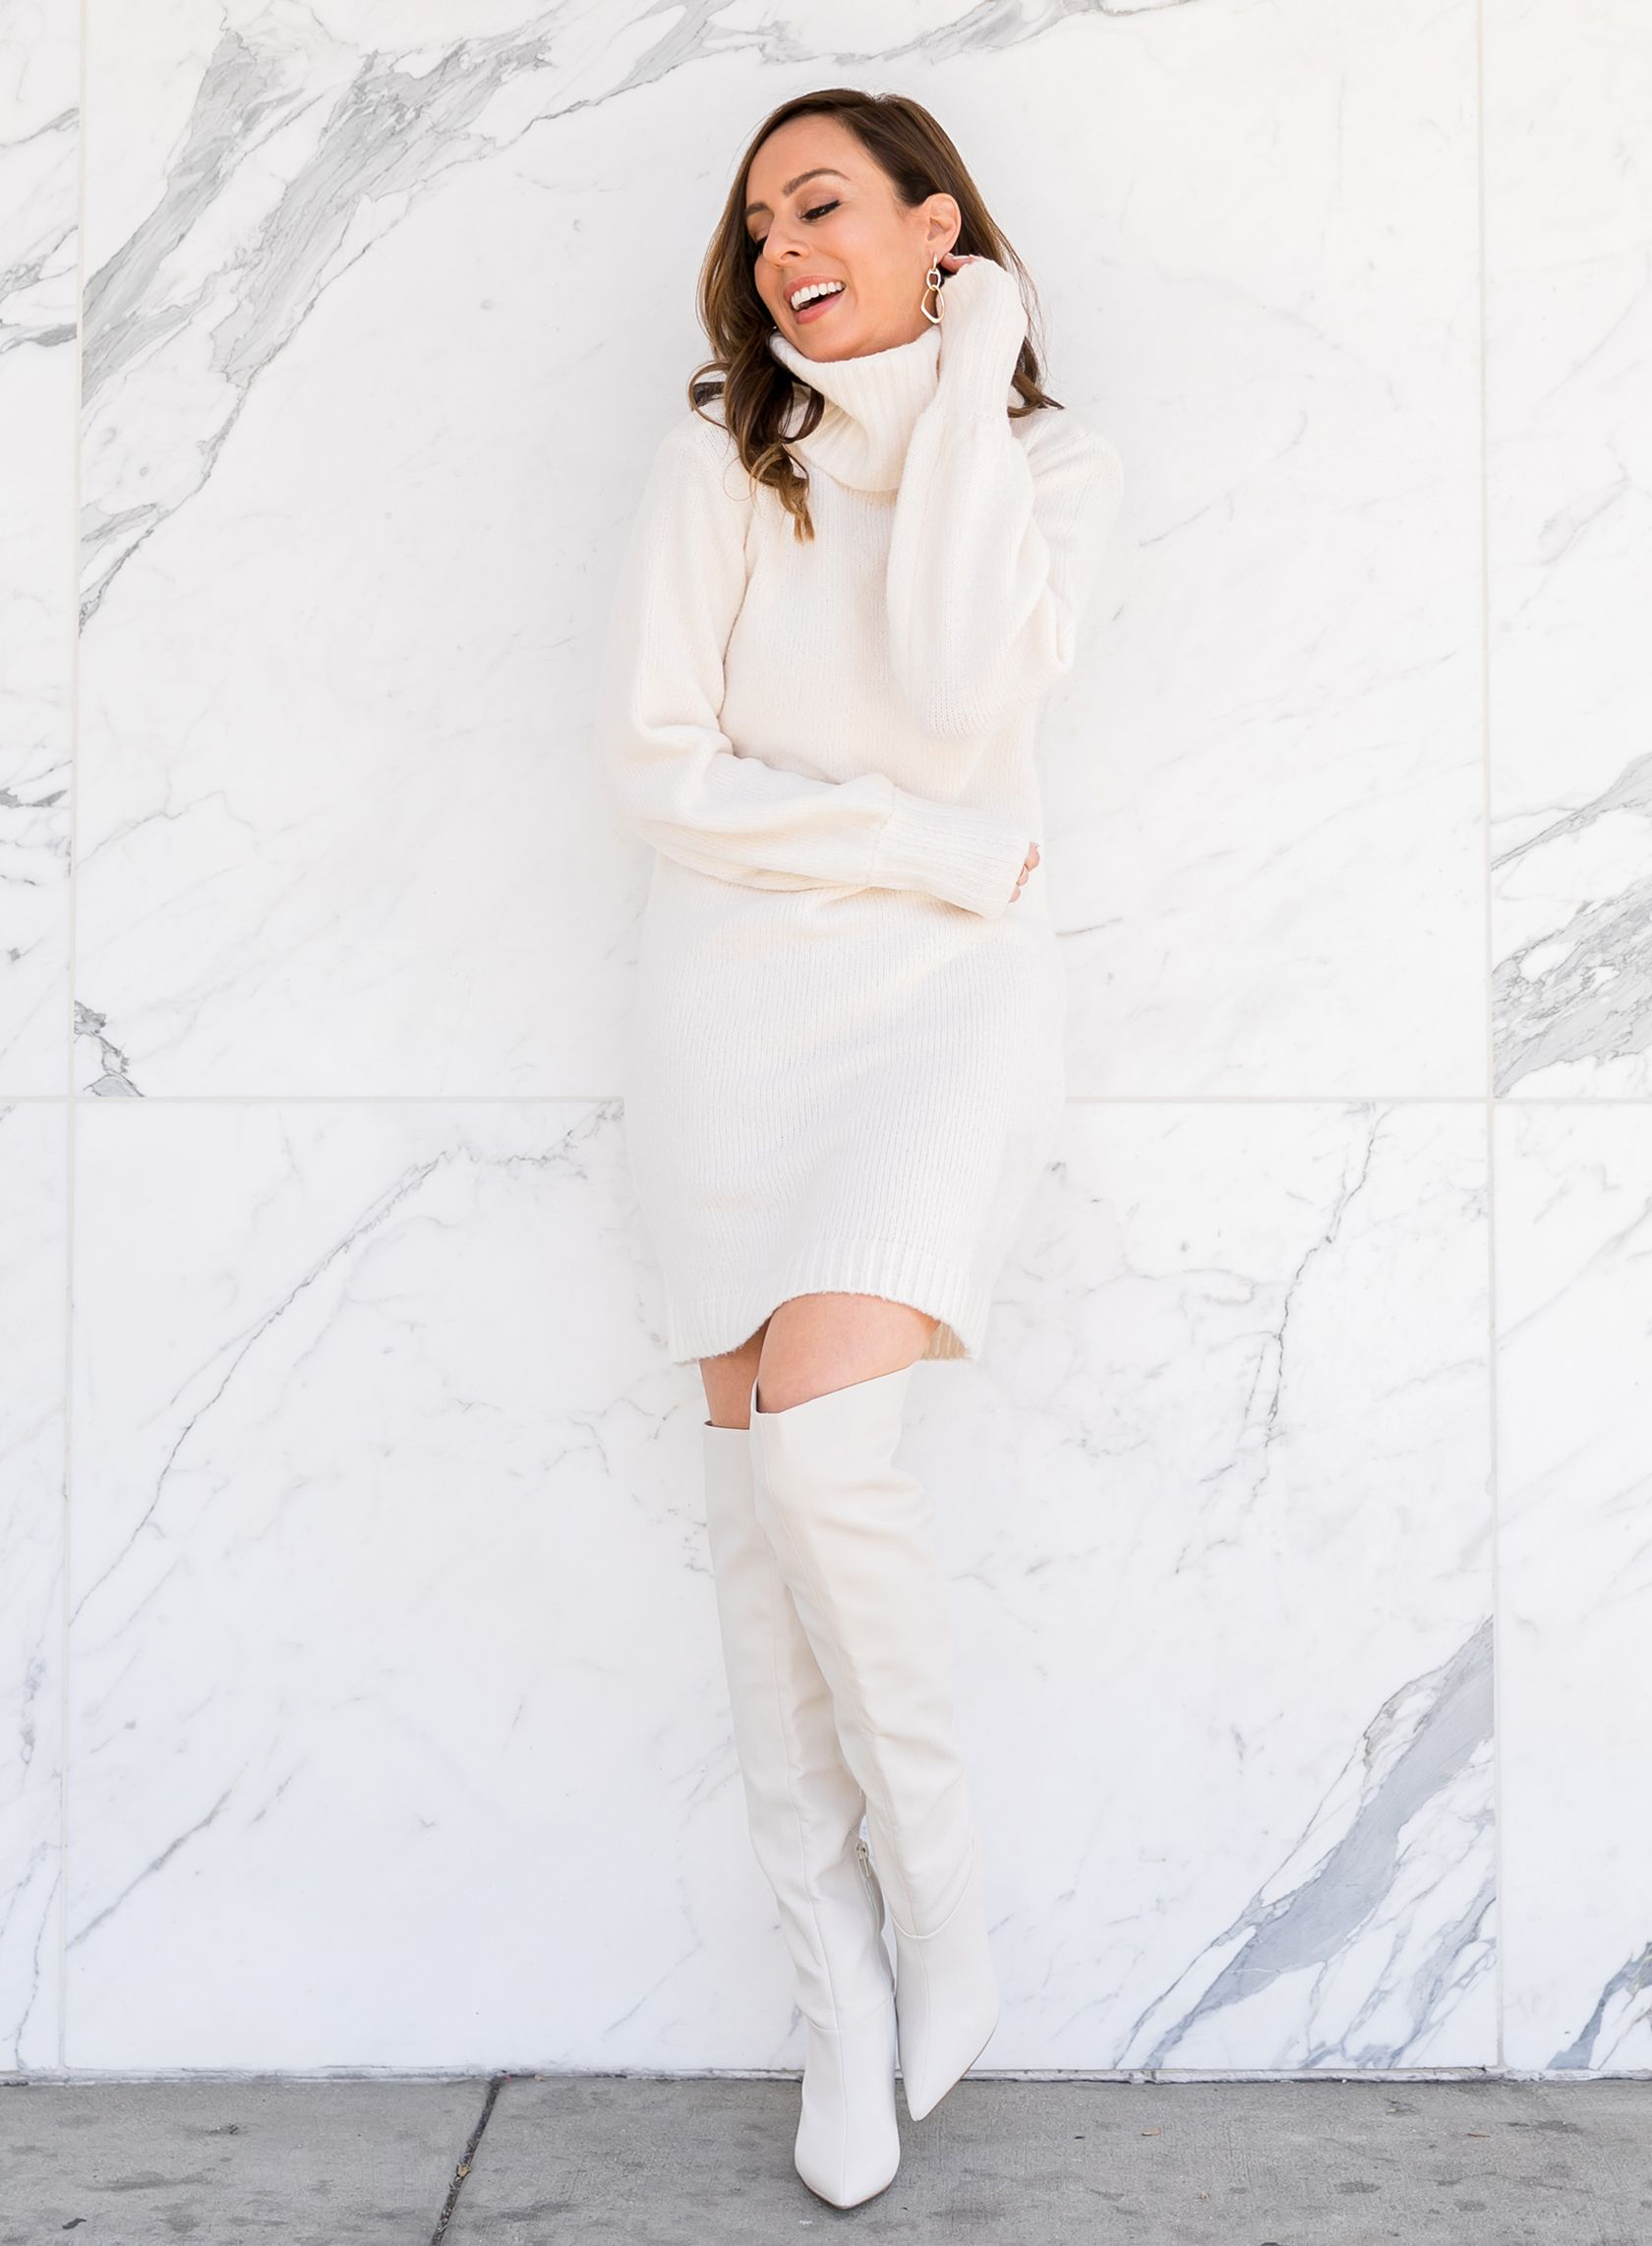 c5fabdb2ce04 Sydne Style shows how to wear over the knee boots with a sweater dress for  winter outfit ideas  winterwhite  otkboots  boots  white  marble   sweaterdress   ...